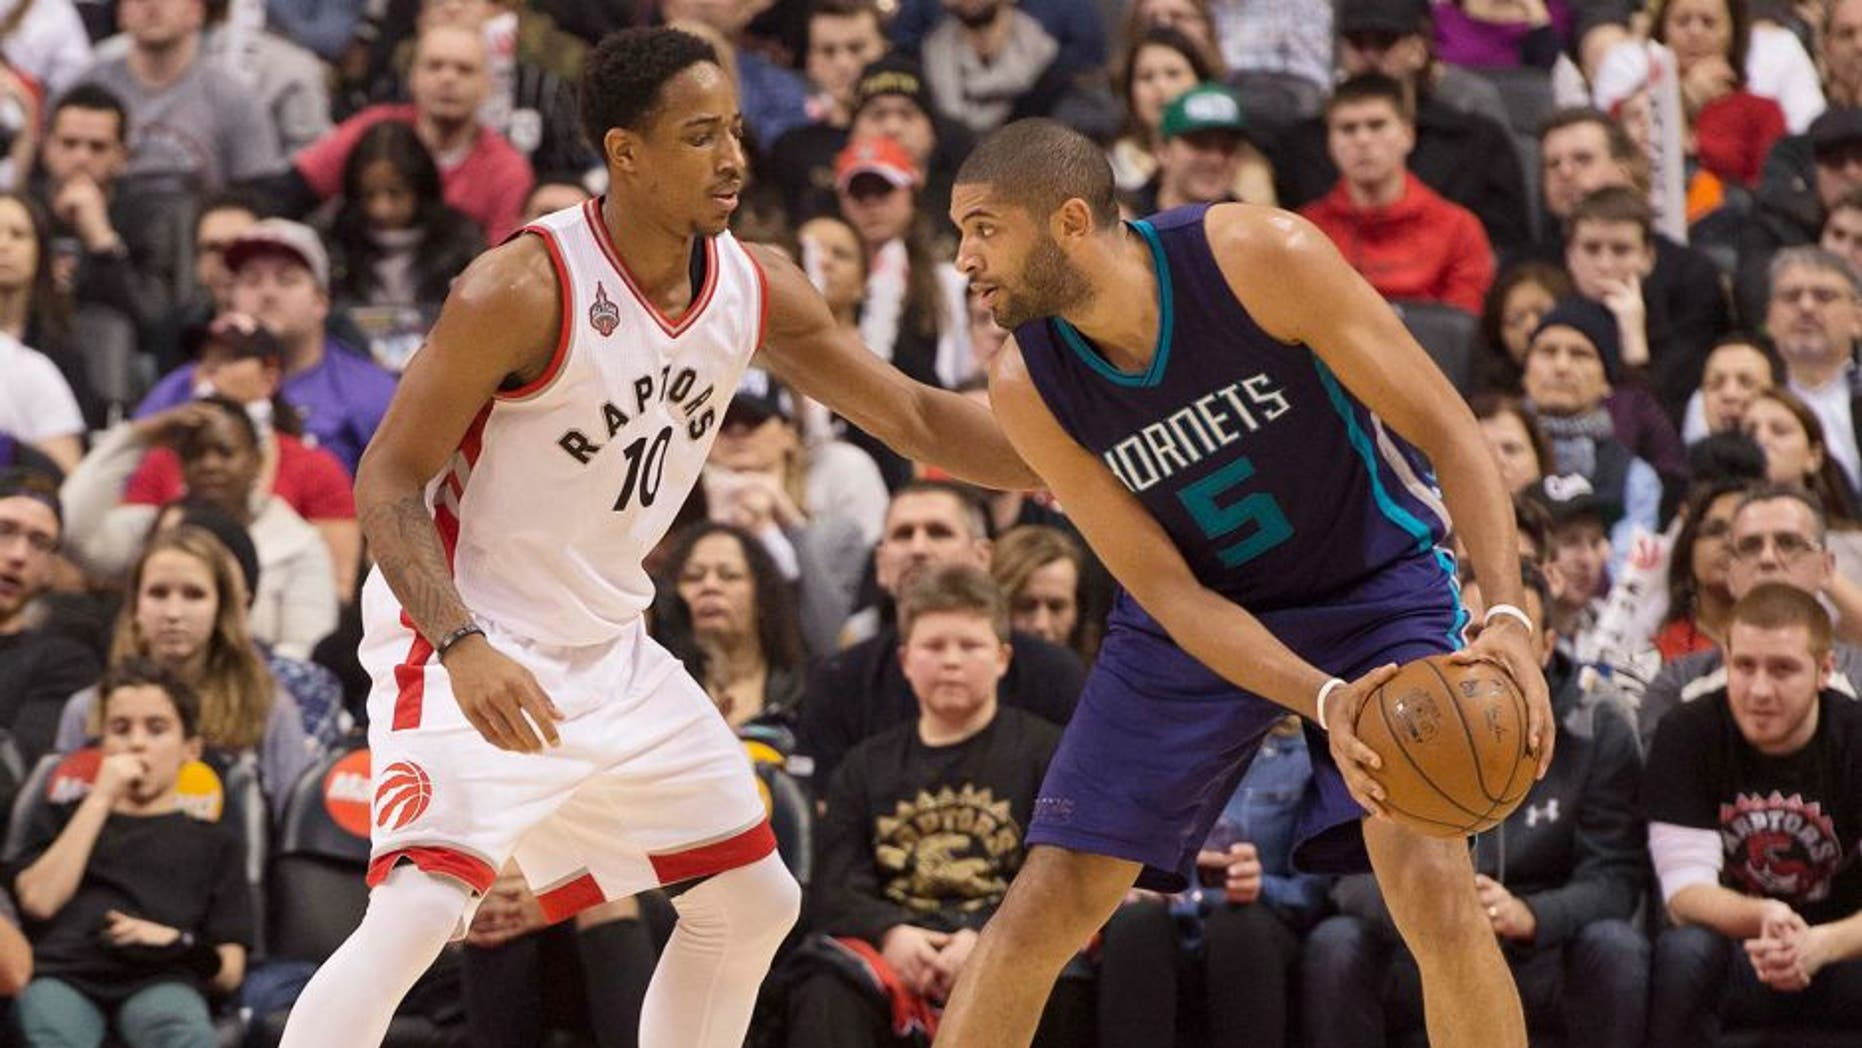 Jan 1, 2016; Toronto, Ontario, CAN;Charlotte Hornets guard Nicolas Batum (5) looks to play a ball as Toronto Raptors guard DeMar DeRozan (10) tries to defend during the third quarter in a game at Air Canada Centre. The Toronto Raptors won 104-94. Mandatory Credit: Nick Turchiaro-USA TODAY Sports